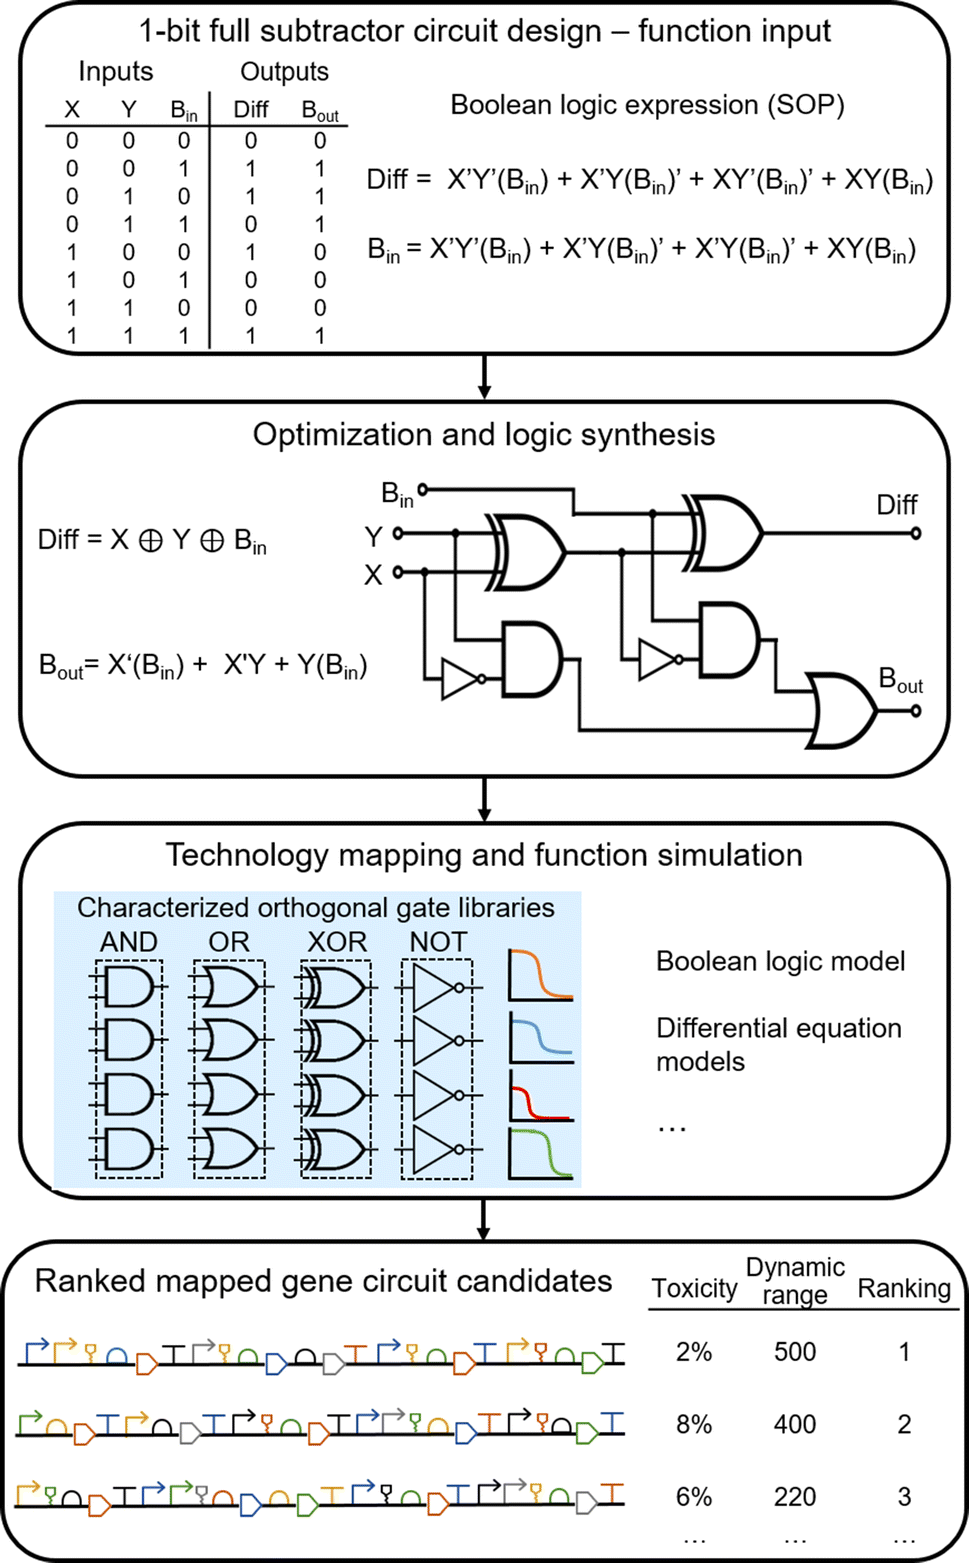 Scaling Up Genetic Circuit Design For Cellular Computing Advances Formulas To Solve Basic Dc Electric Circuits Cost Free Builder Open Image In New Window